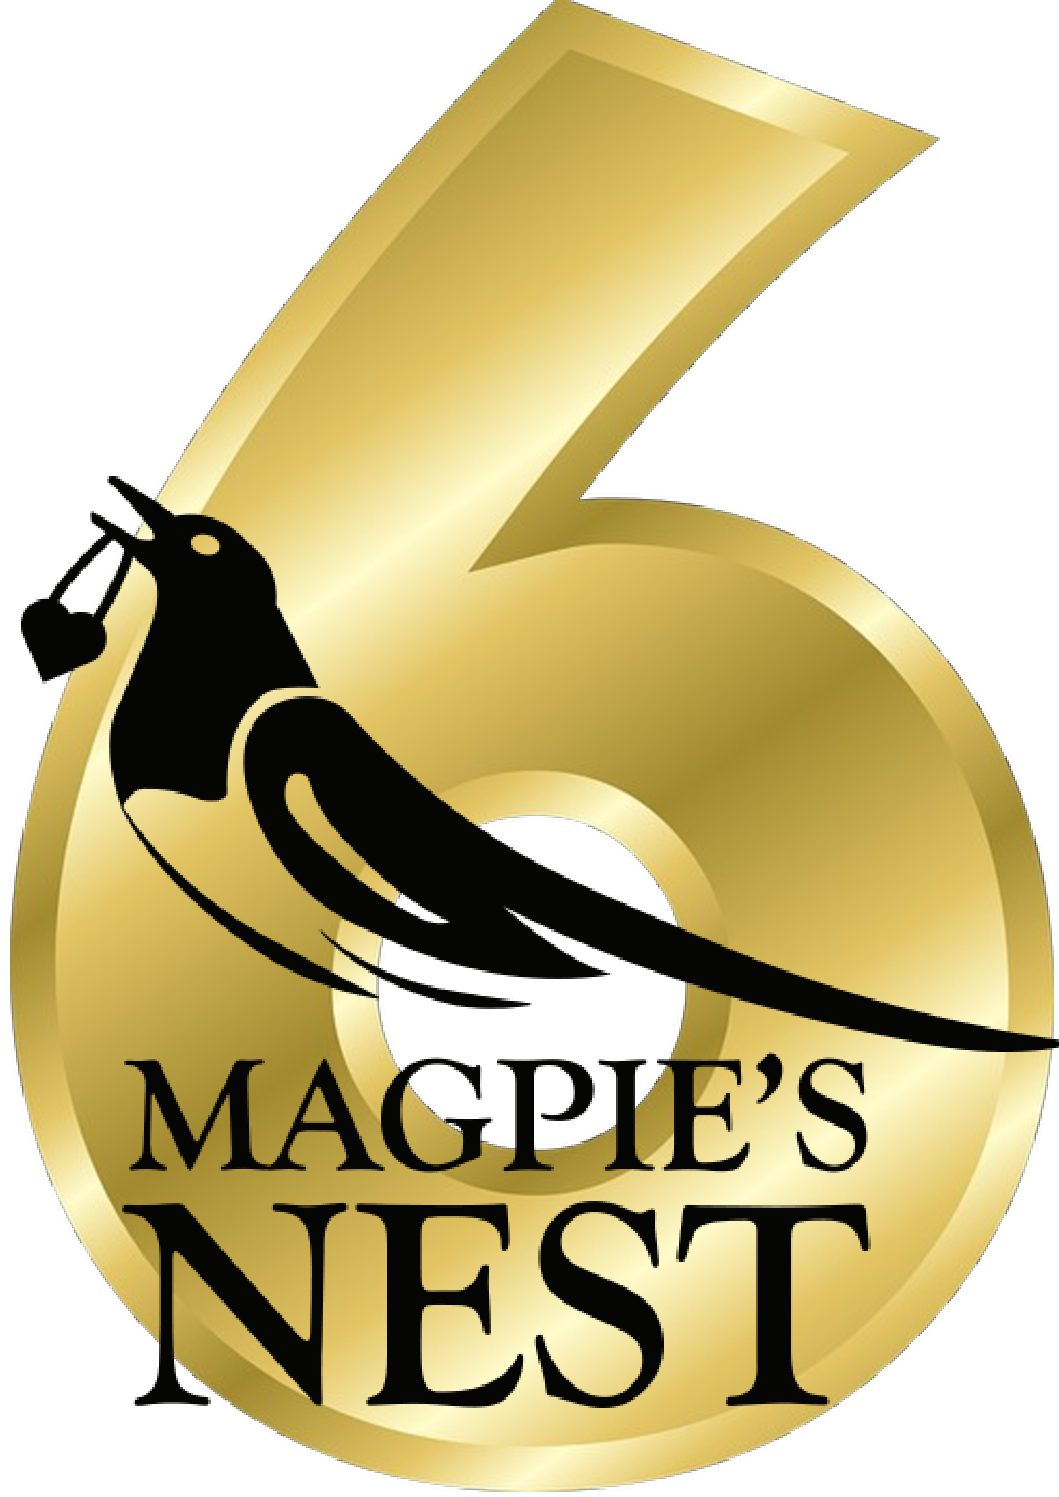 6 Golden Years For Magpies!